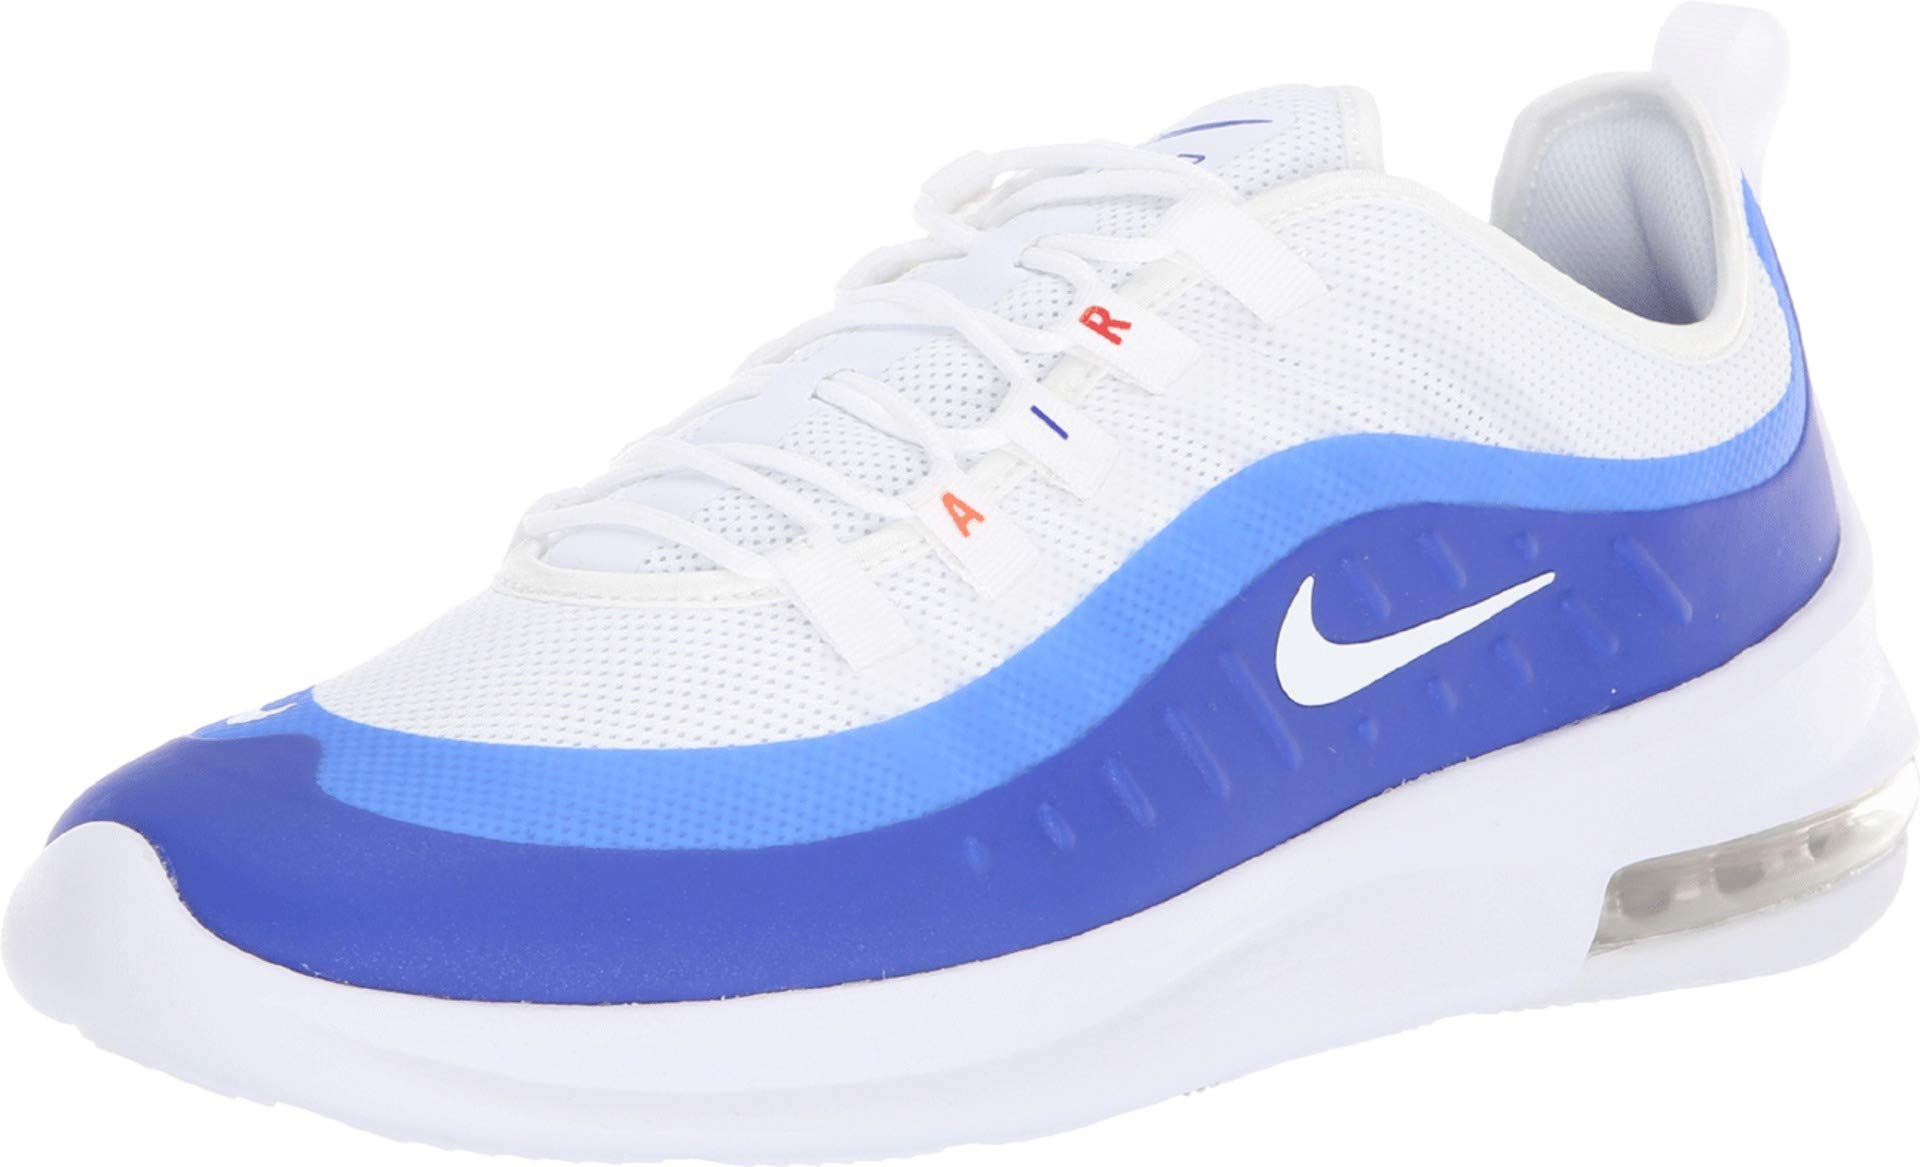 Air Max Axis White/Racer Blue/Habanero